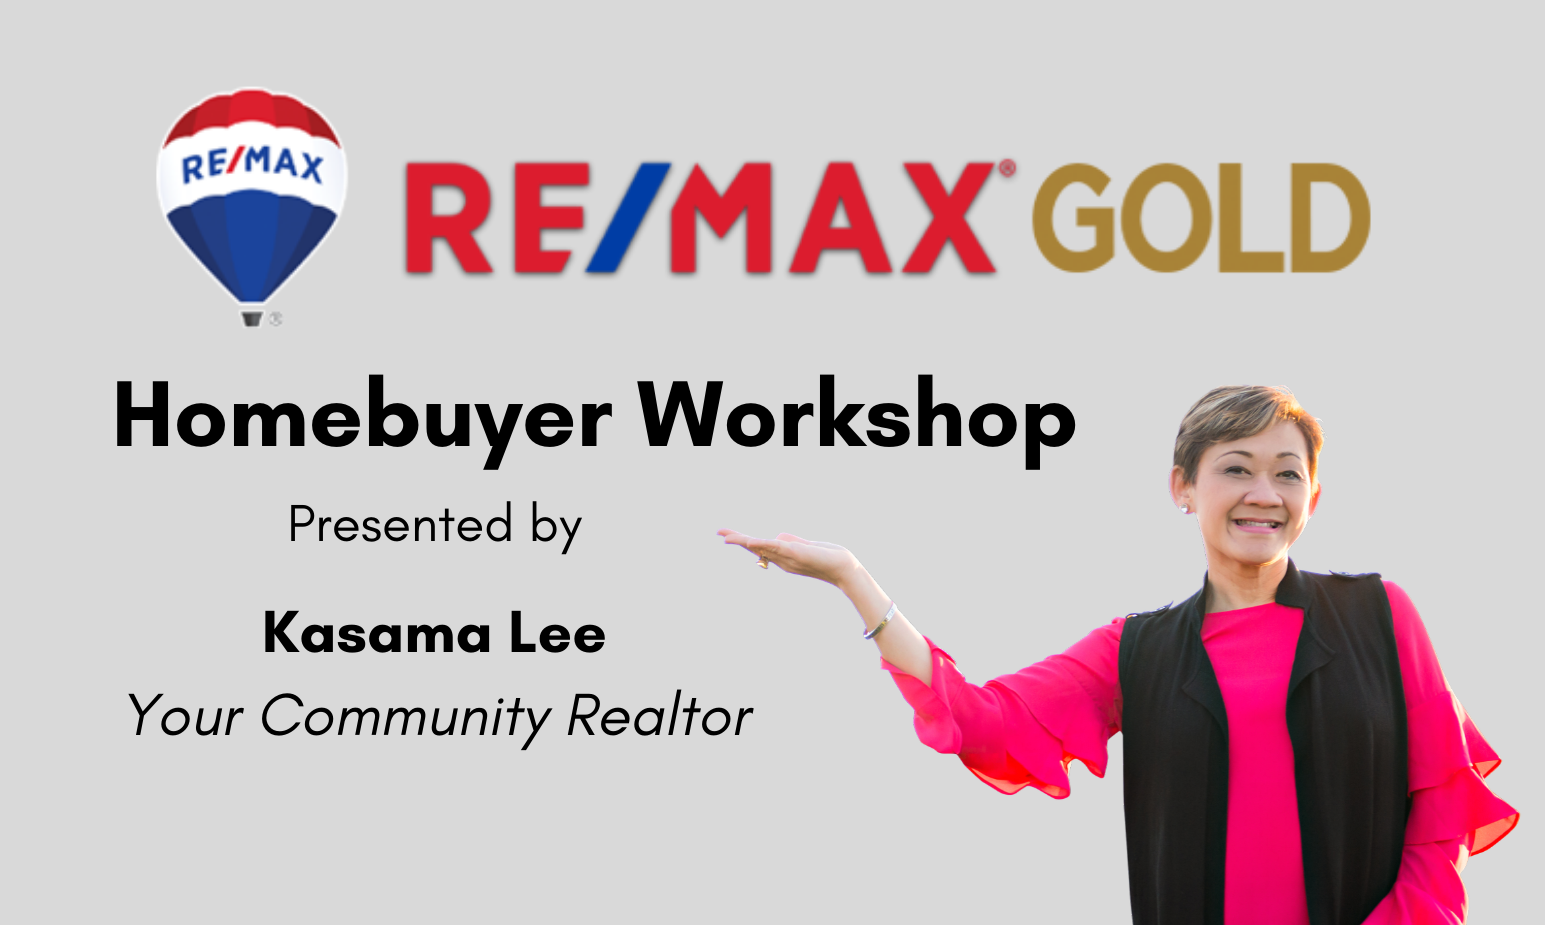 Home Buyer Workshop on 12/15